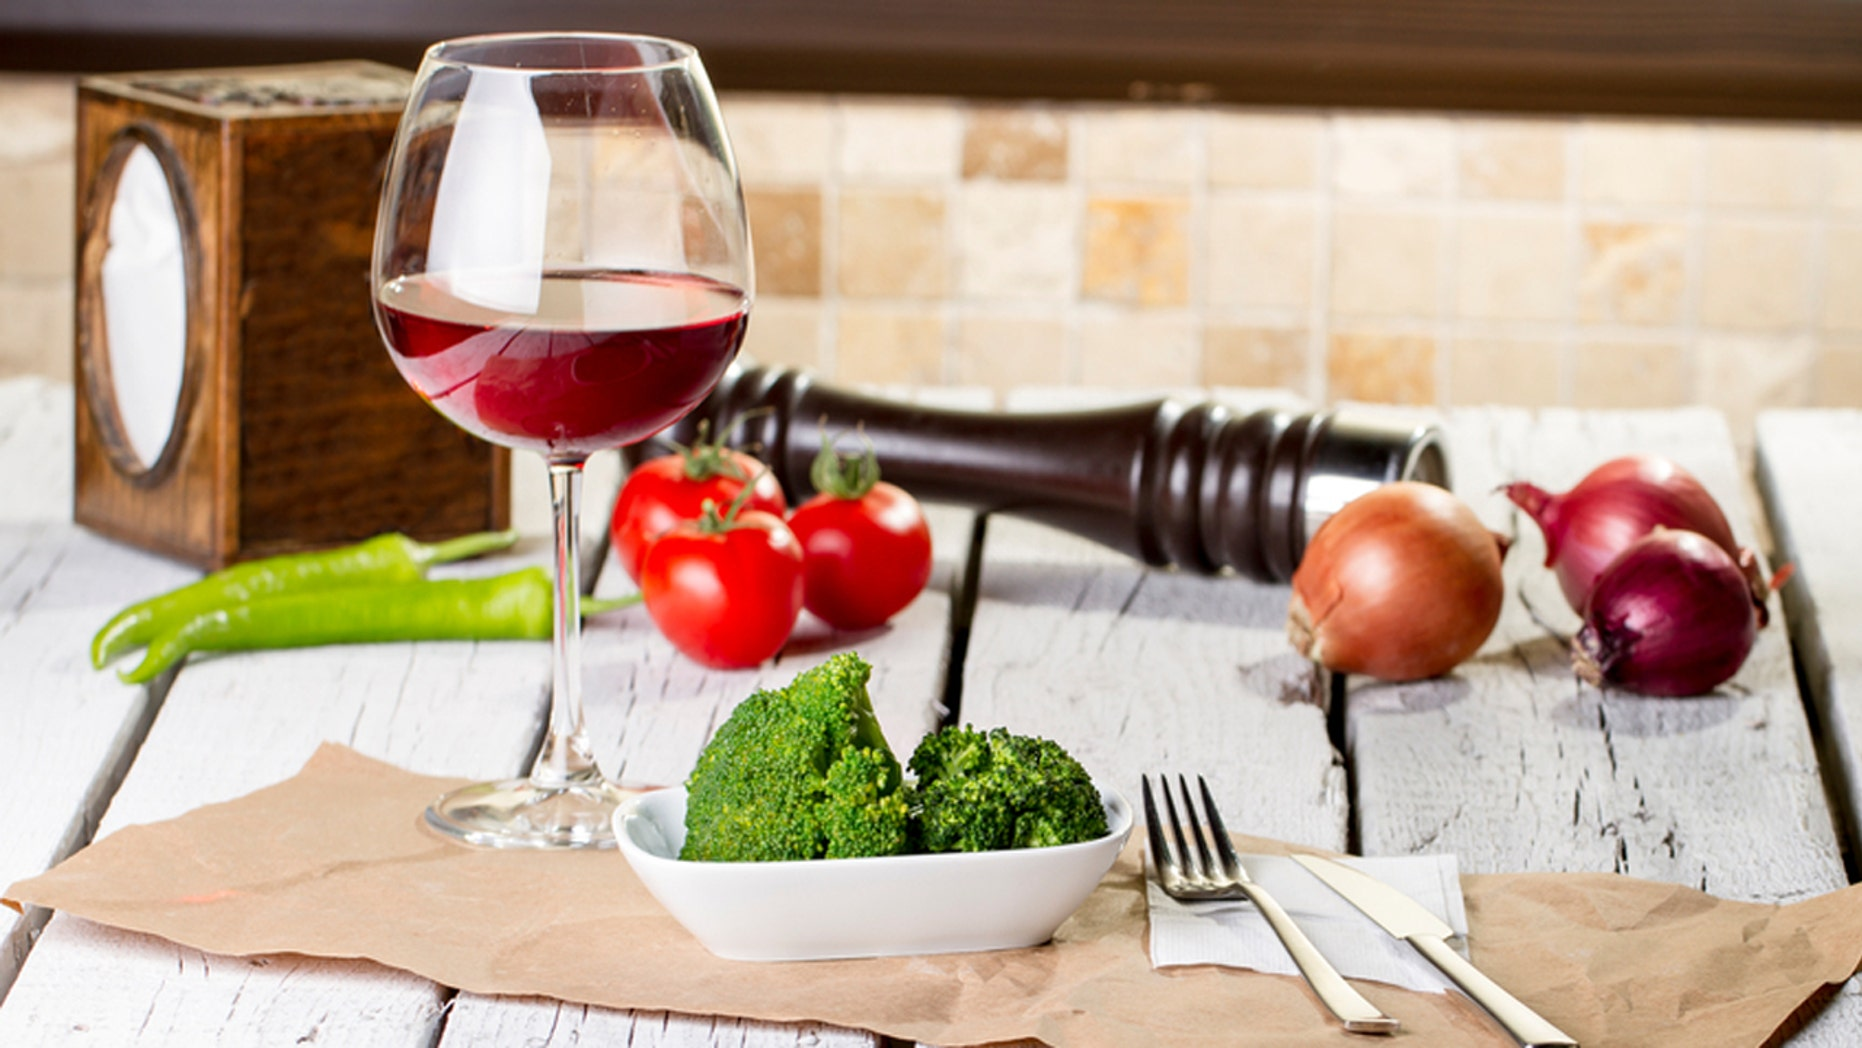 Is drinking wine better for you than eating broccoli? Scientists say probably not.